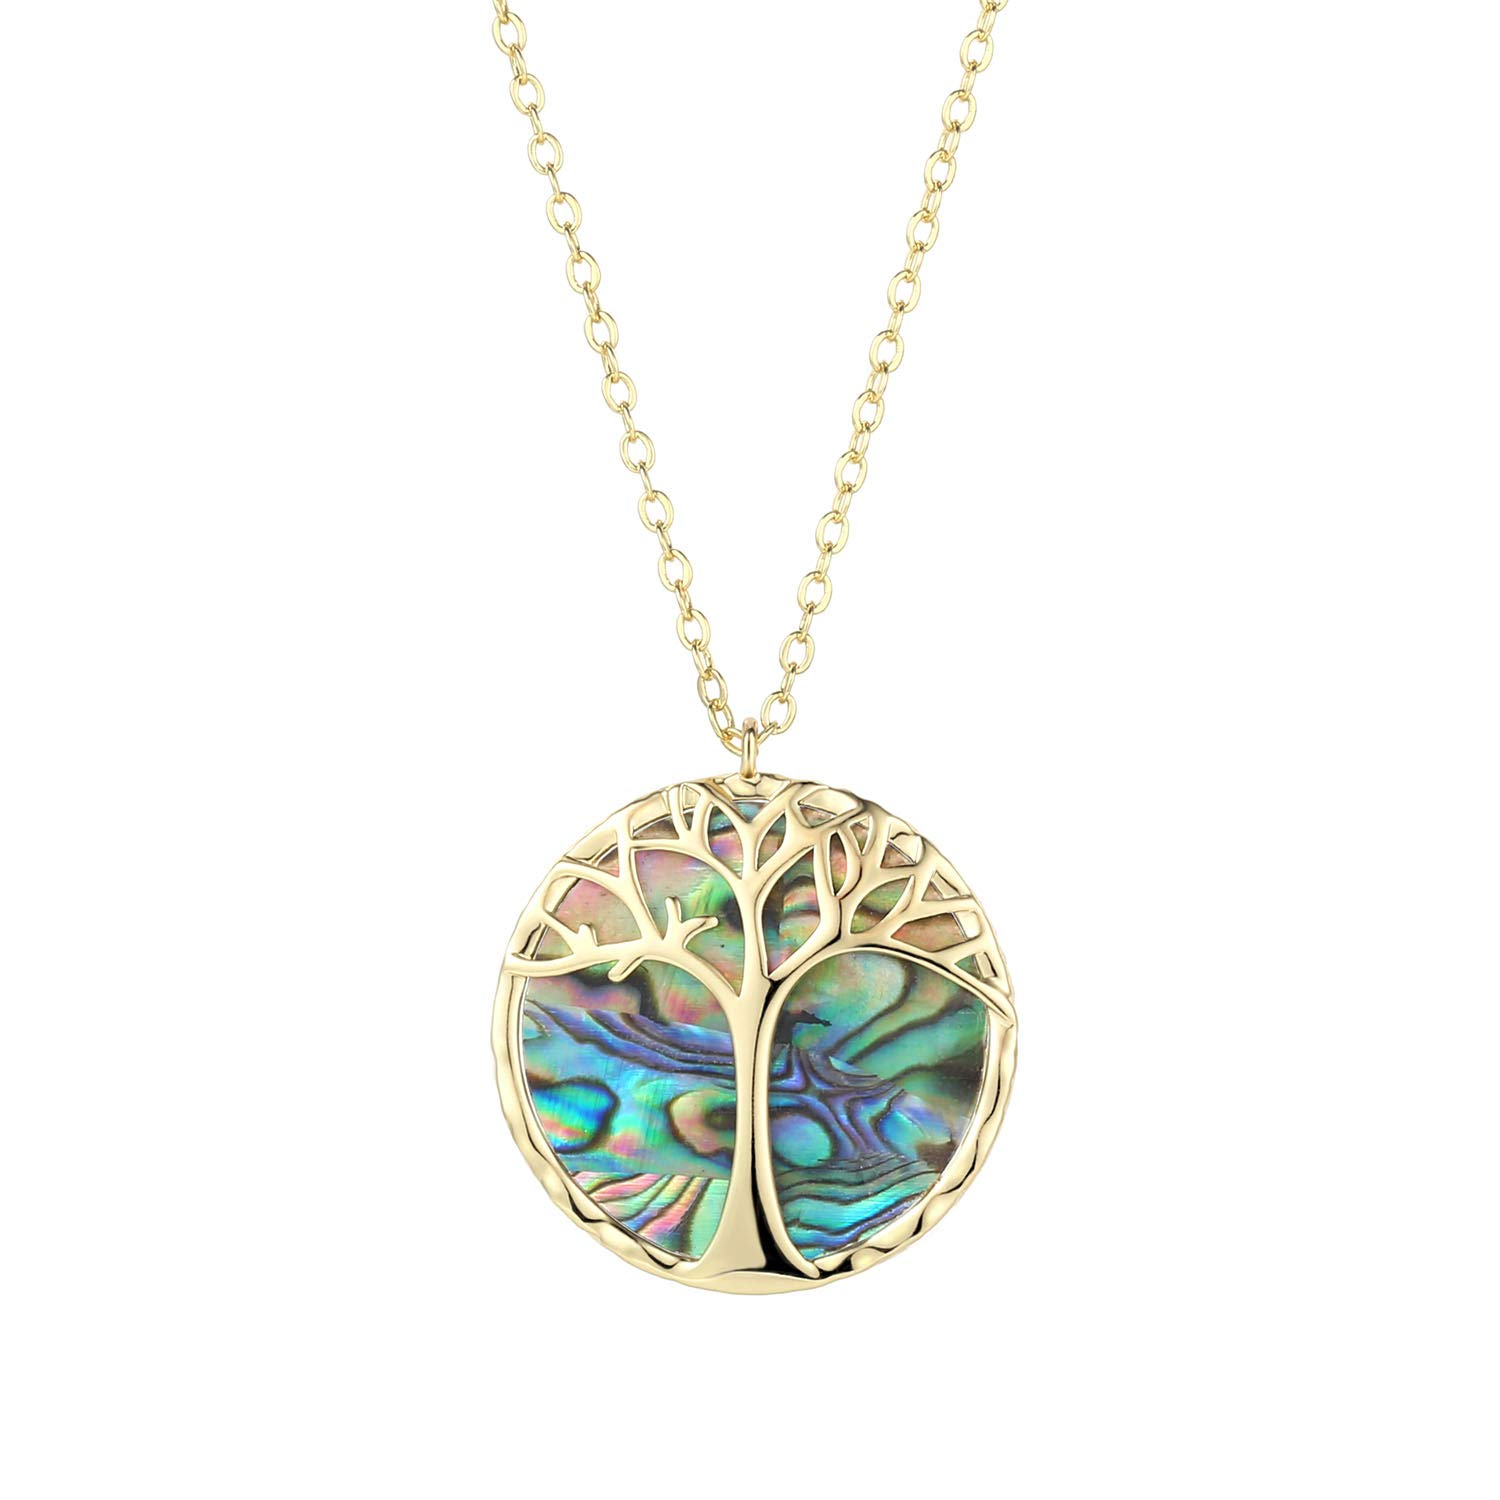 3Pcs Gold Plated Pave Rainbow Cubic Zirconia And Shell Round Pendant Women/'s Fashion Jewelry necklaces